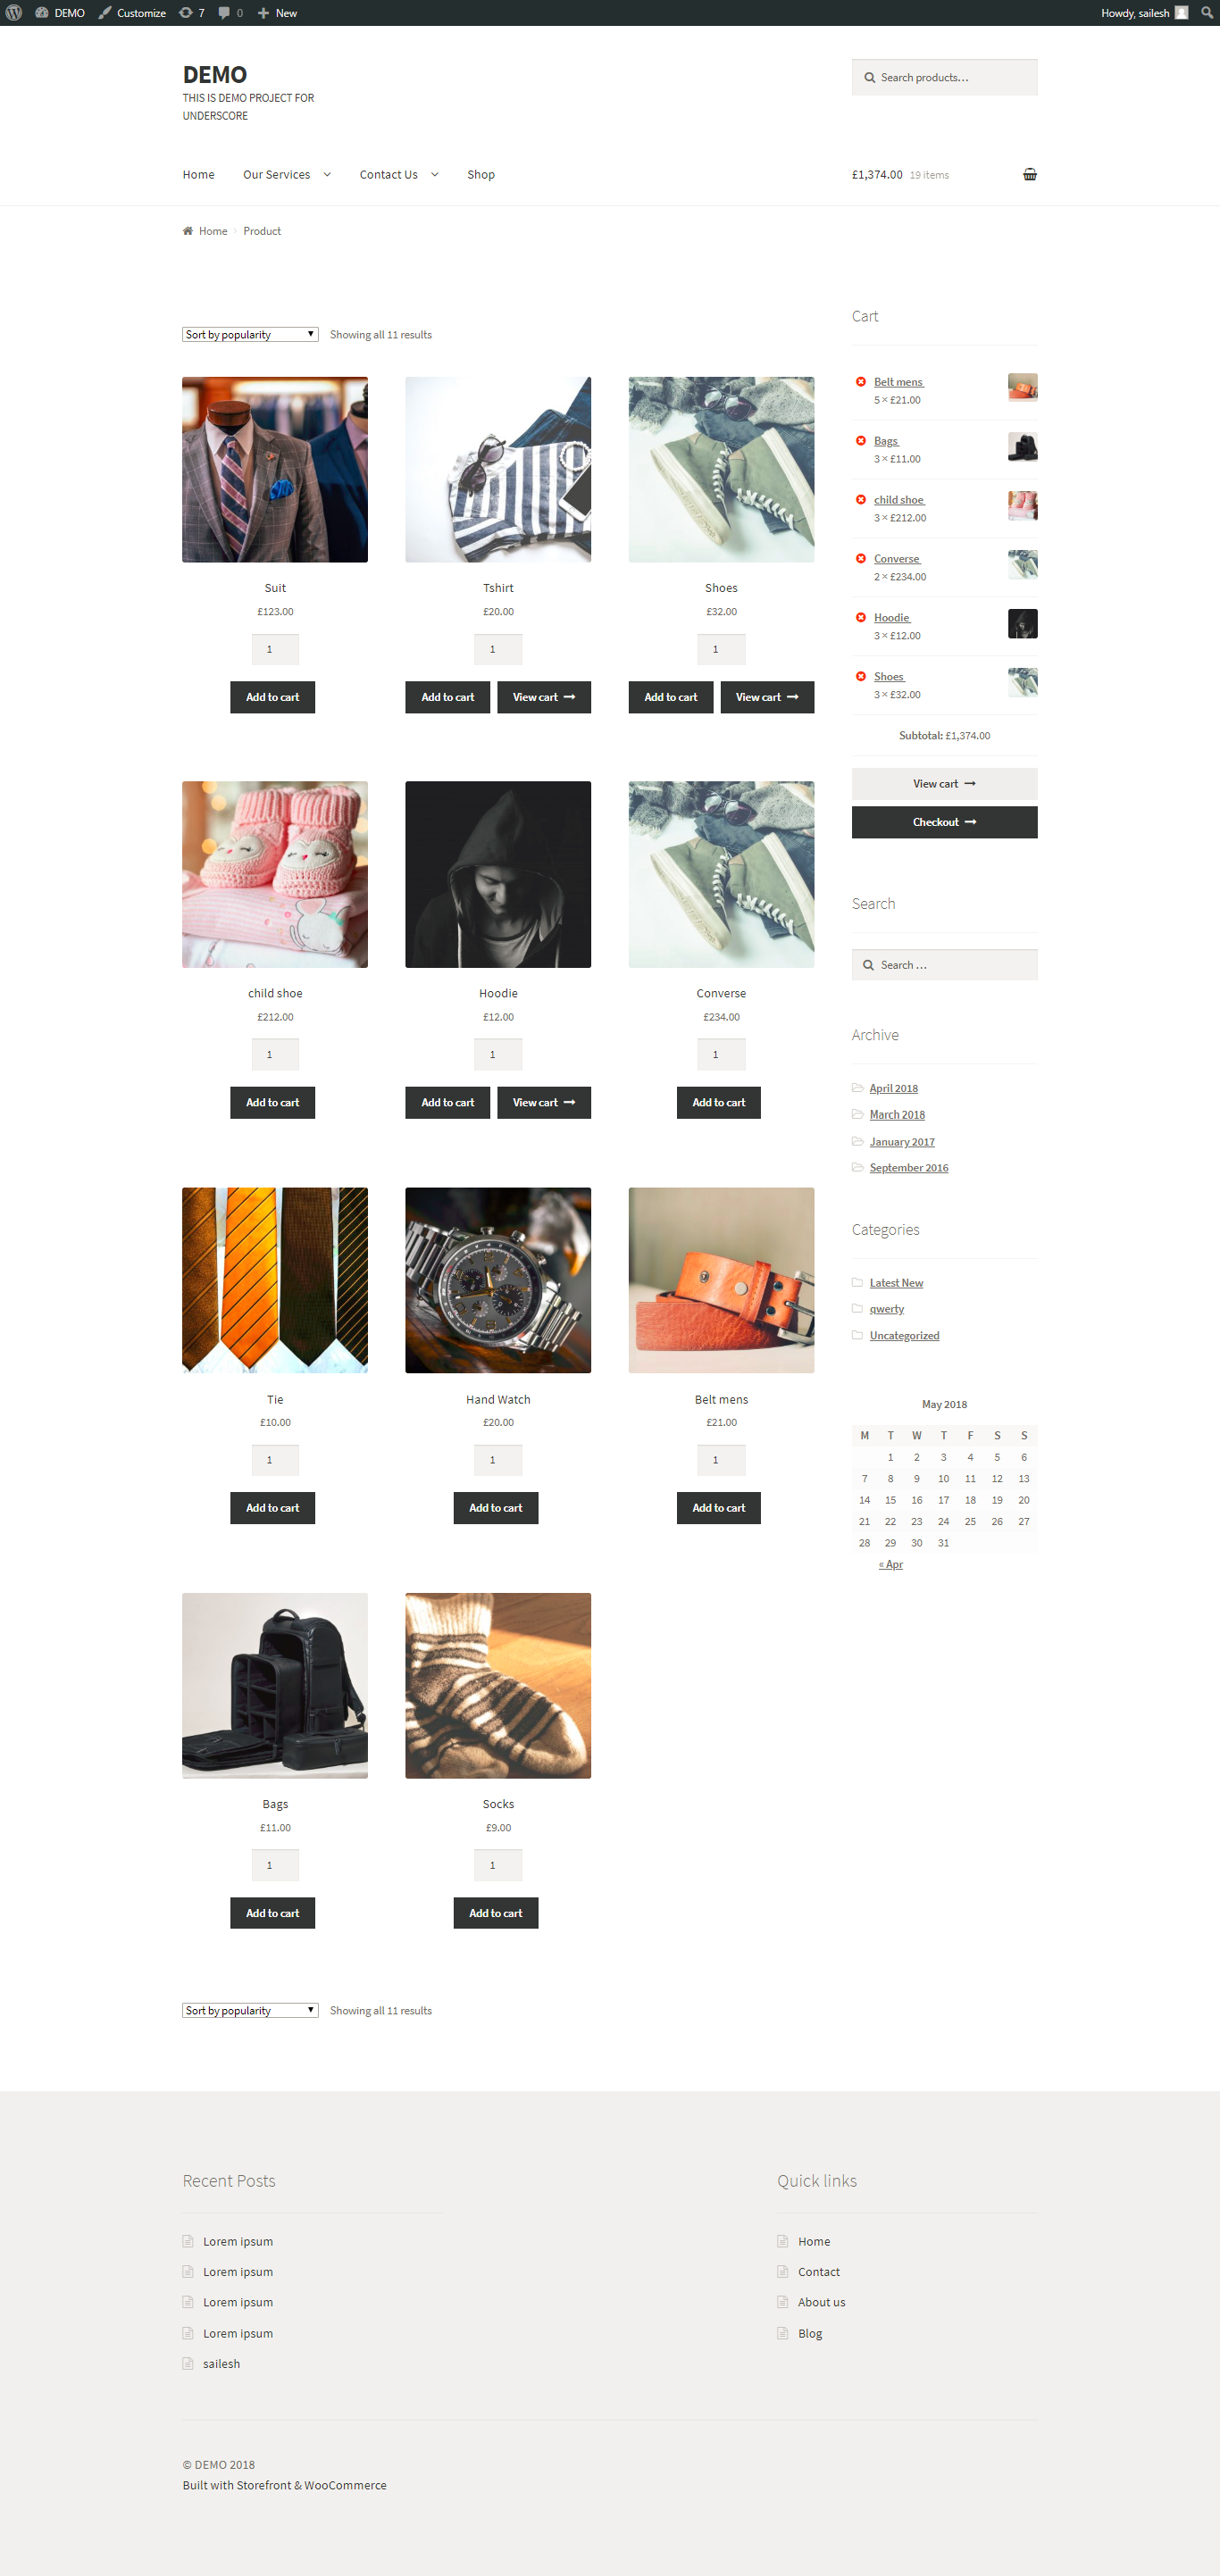 Easy to select multiple quantity form shop page.